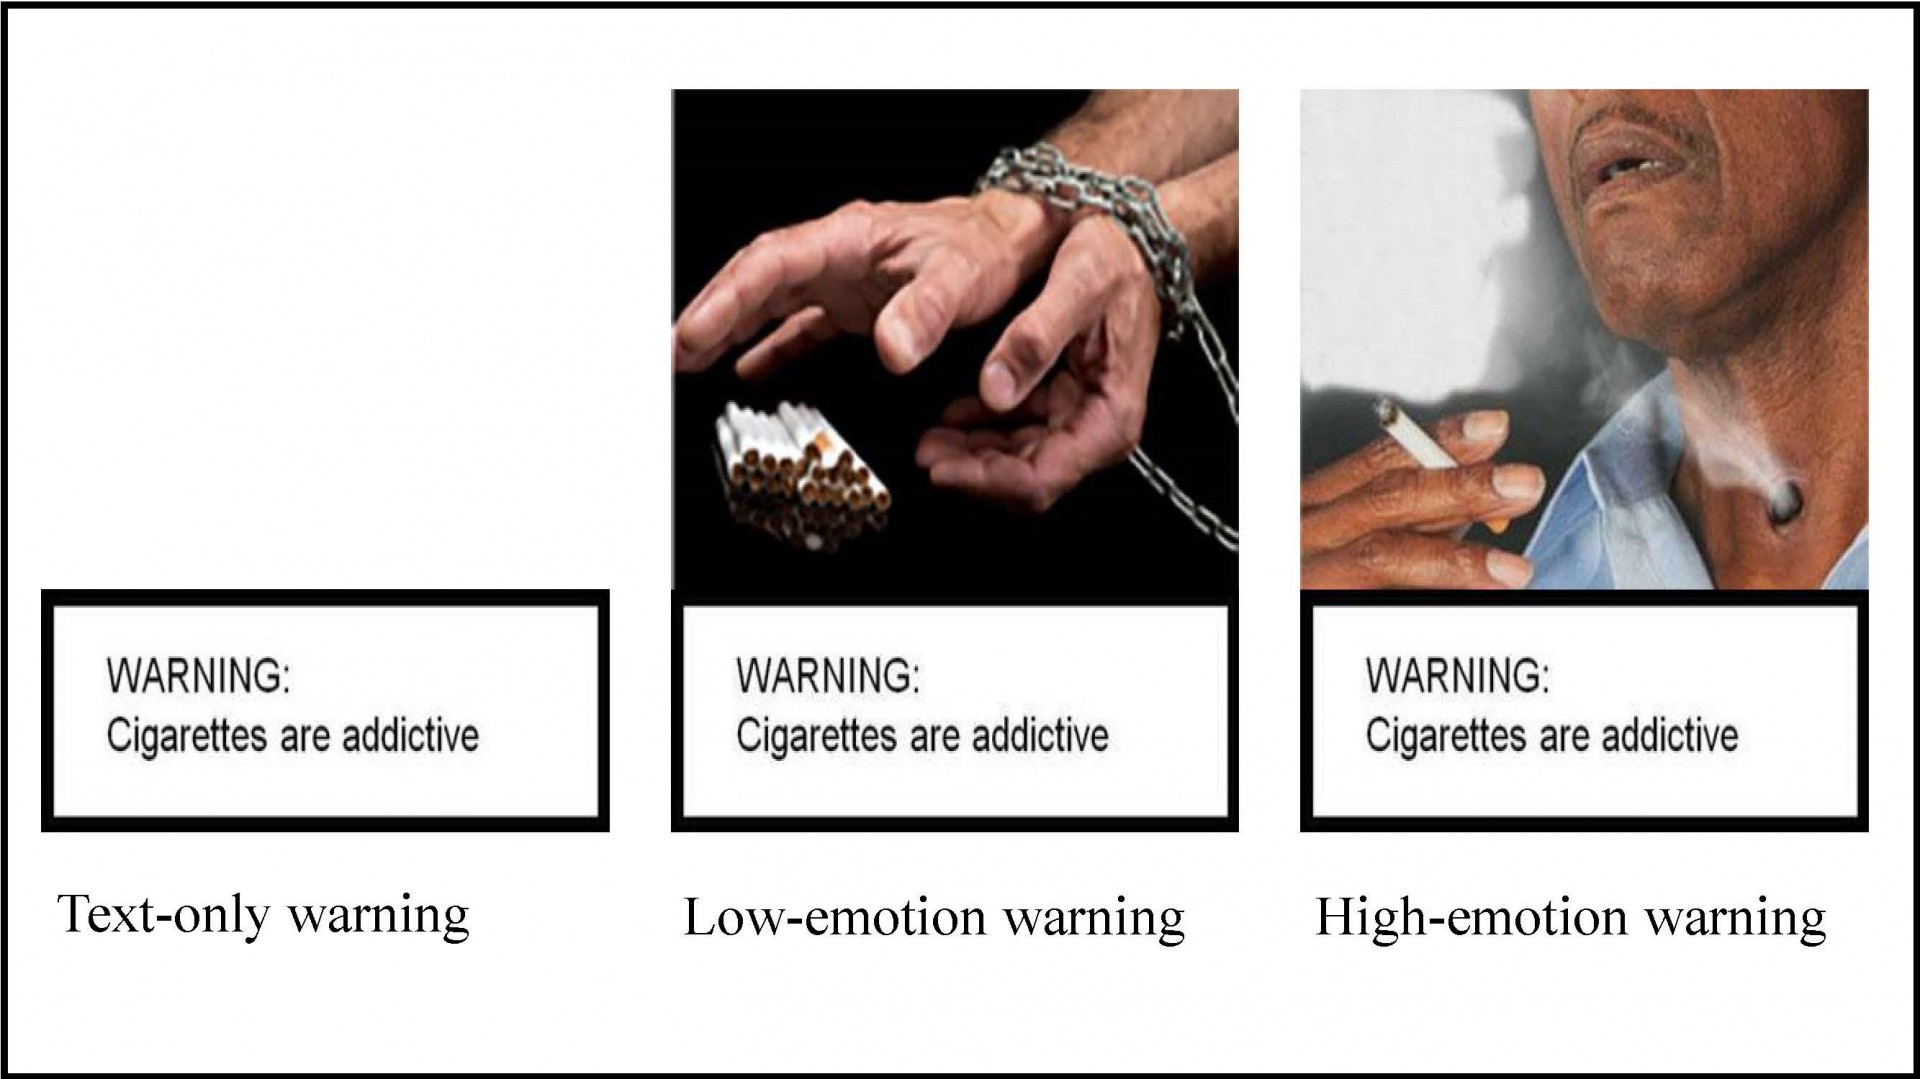 Smokers remember graphic warning labels